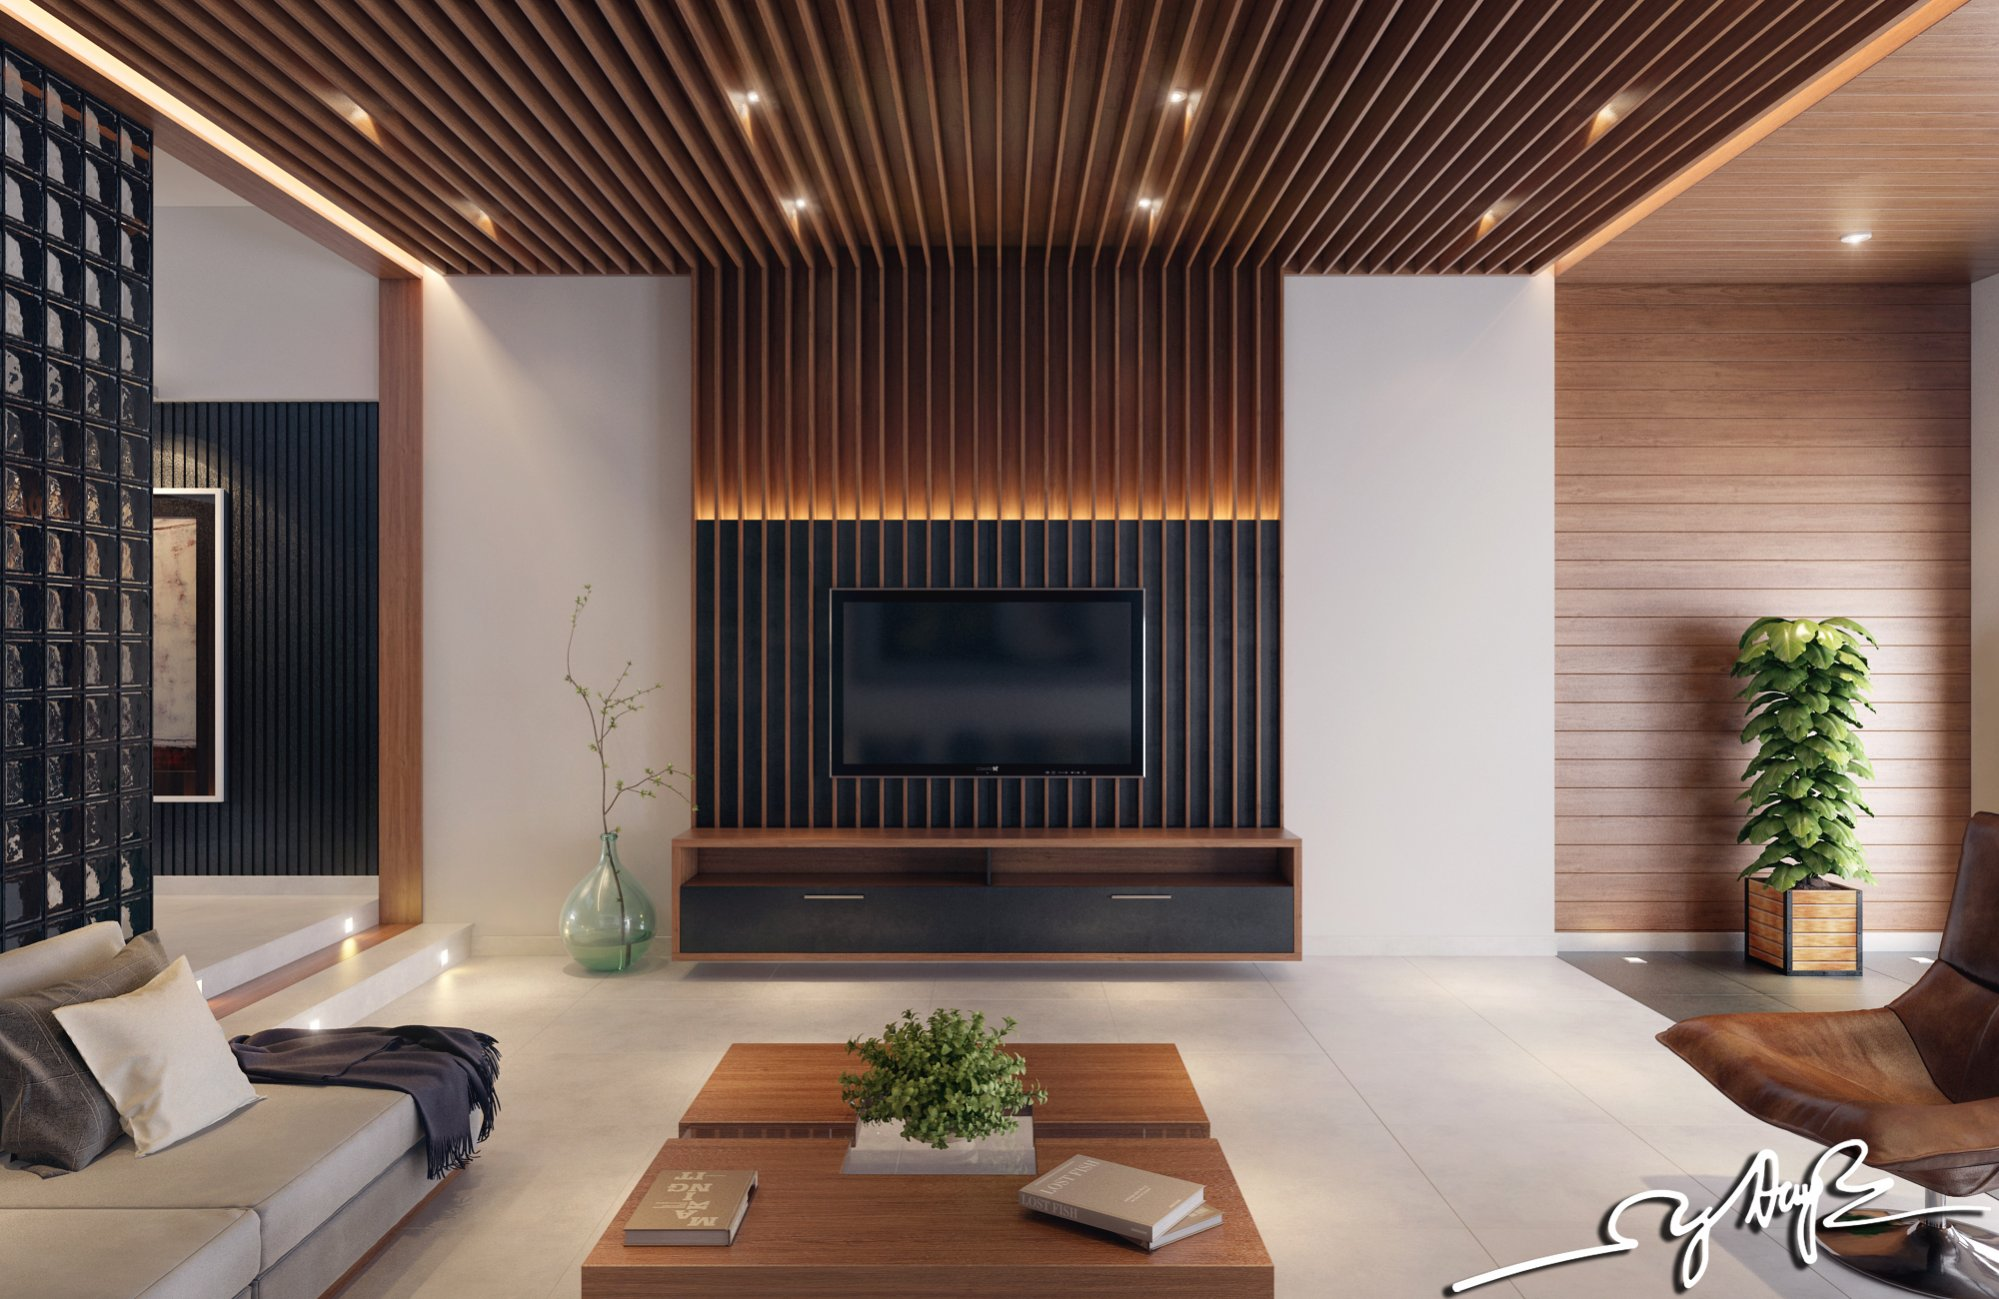 Wall Interior Design interior design close to nature: rich wood themes and indoor